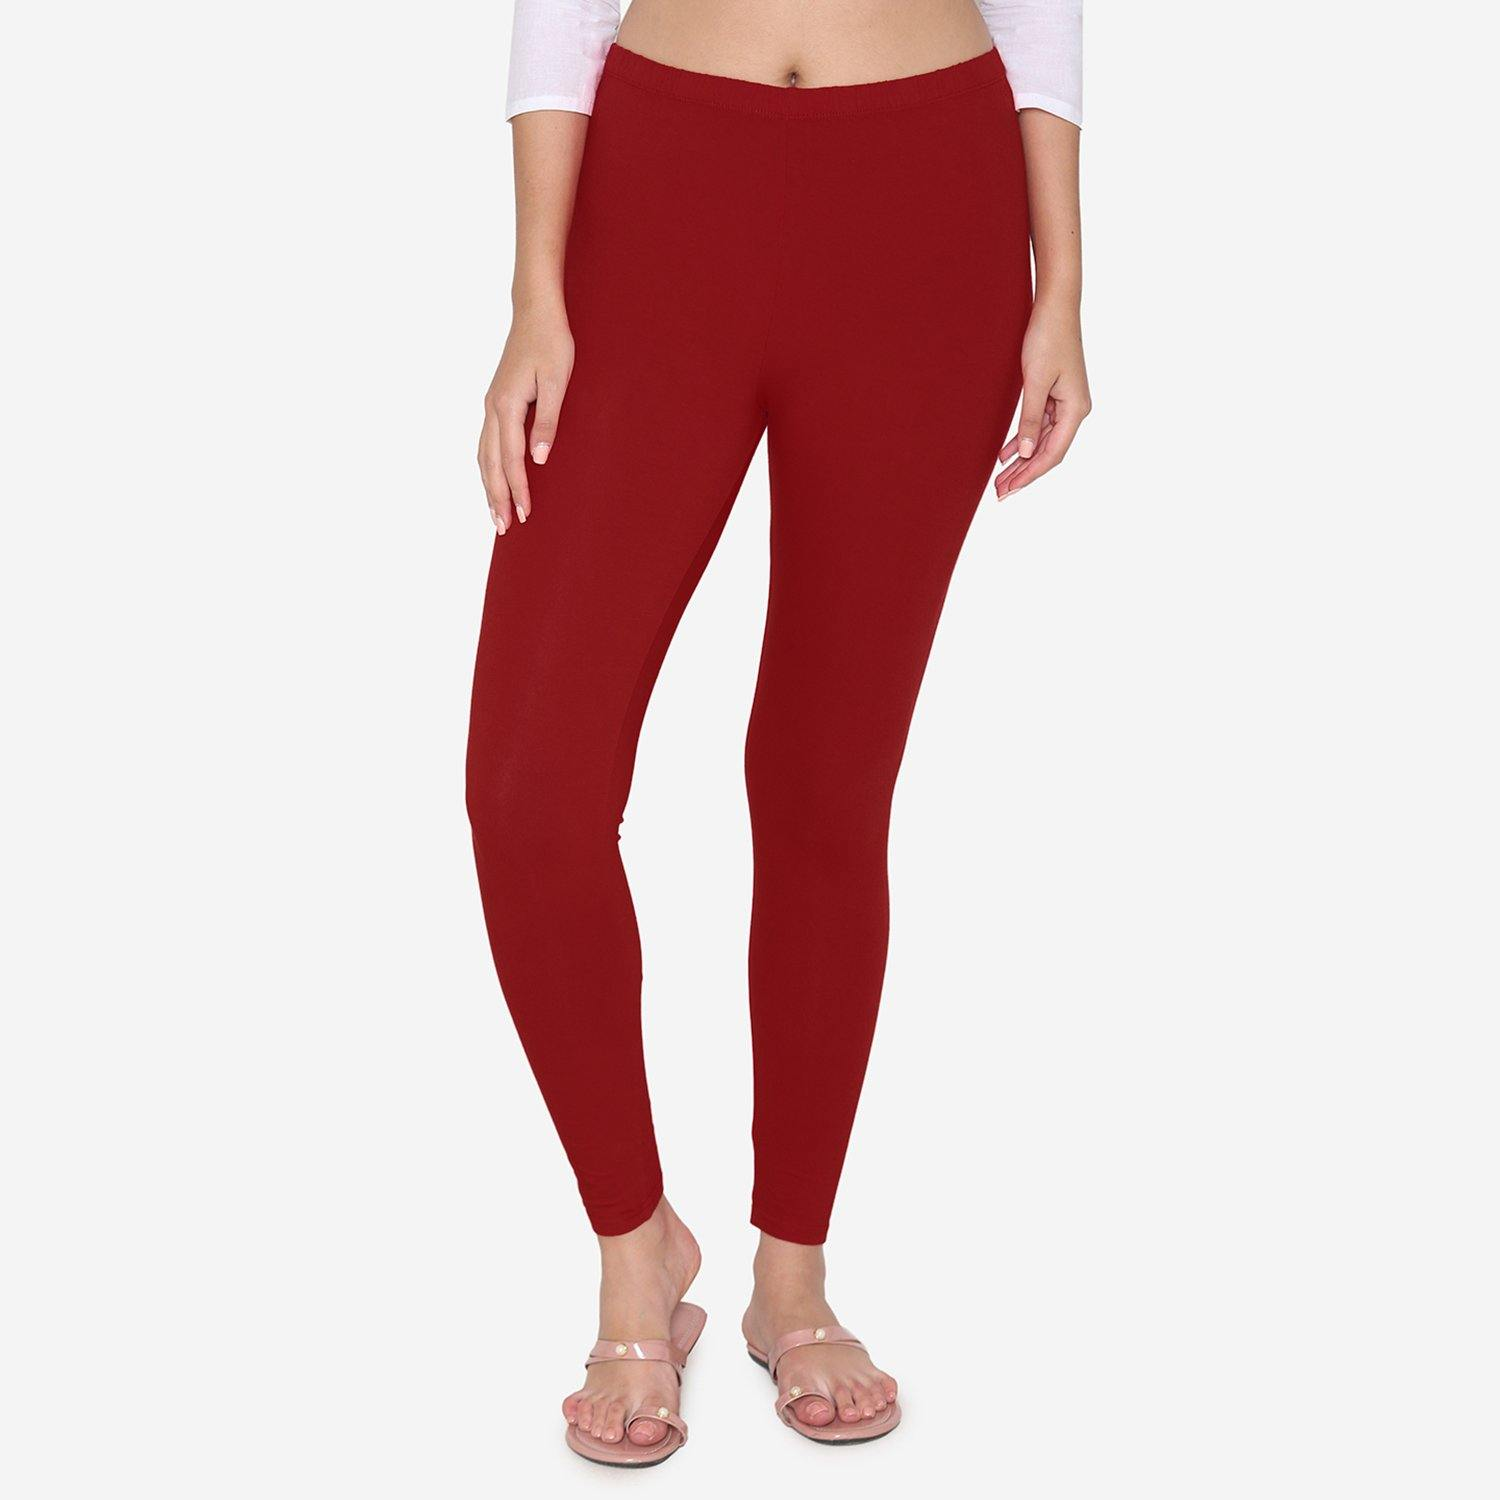 Maroon Color Ankle Legging